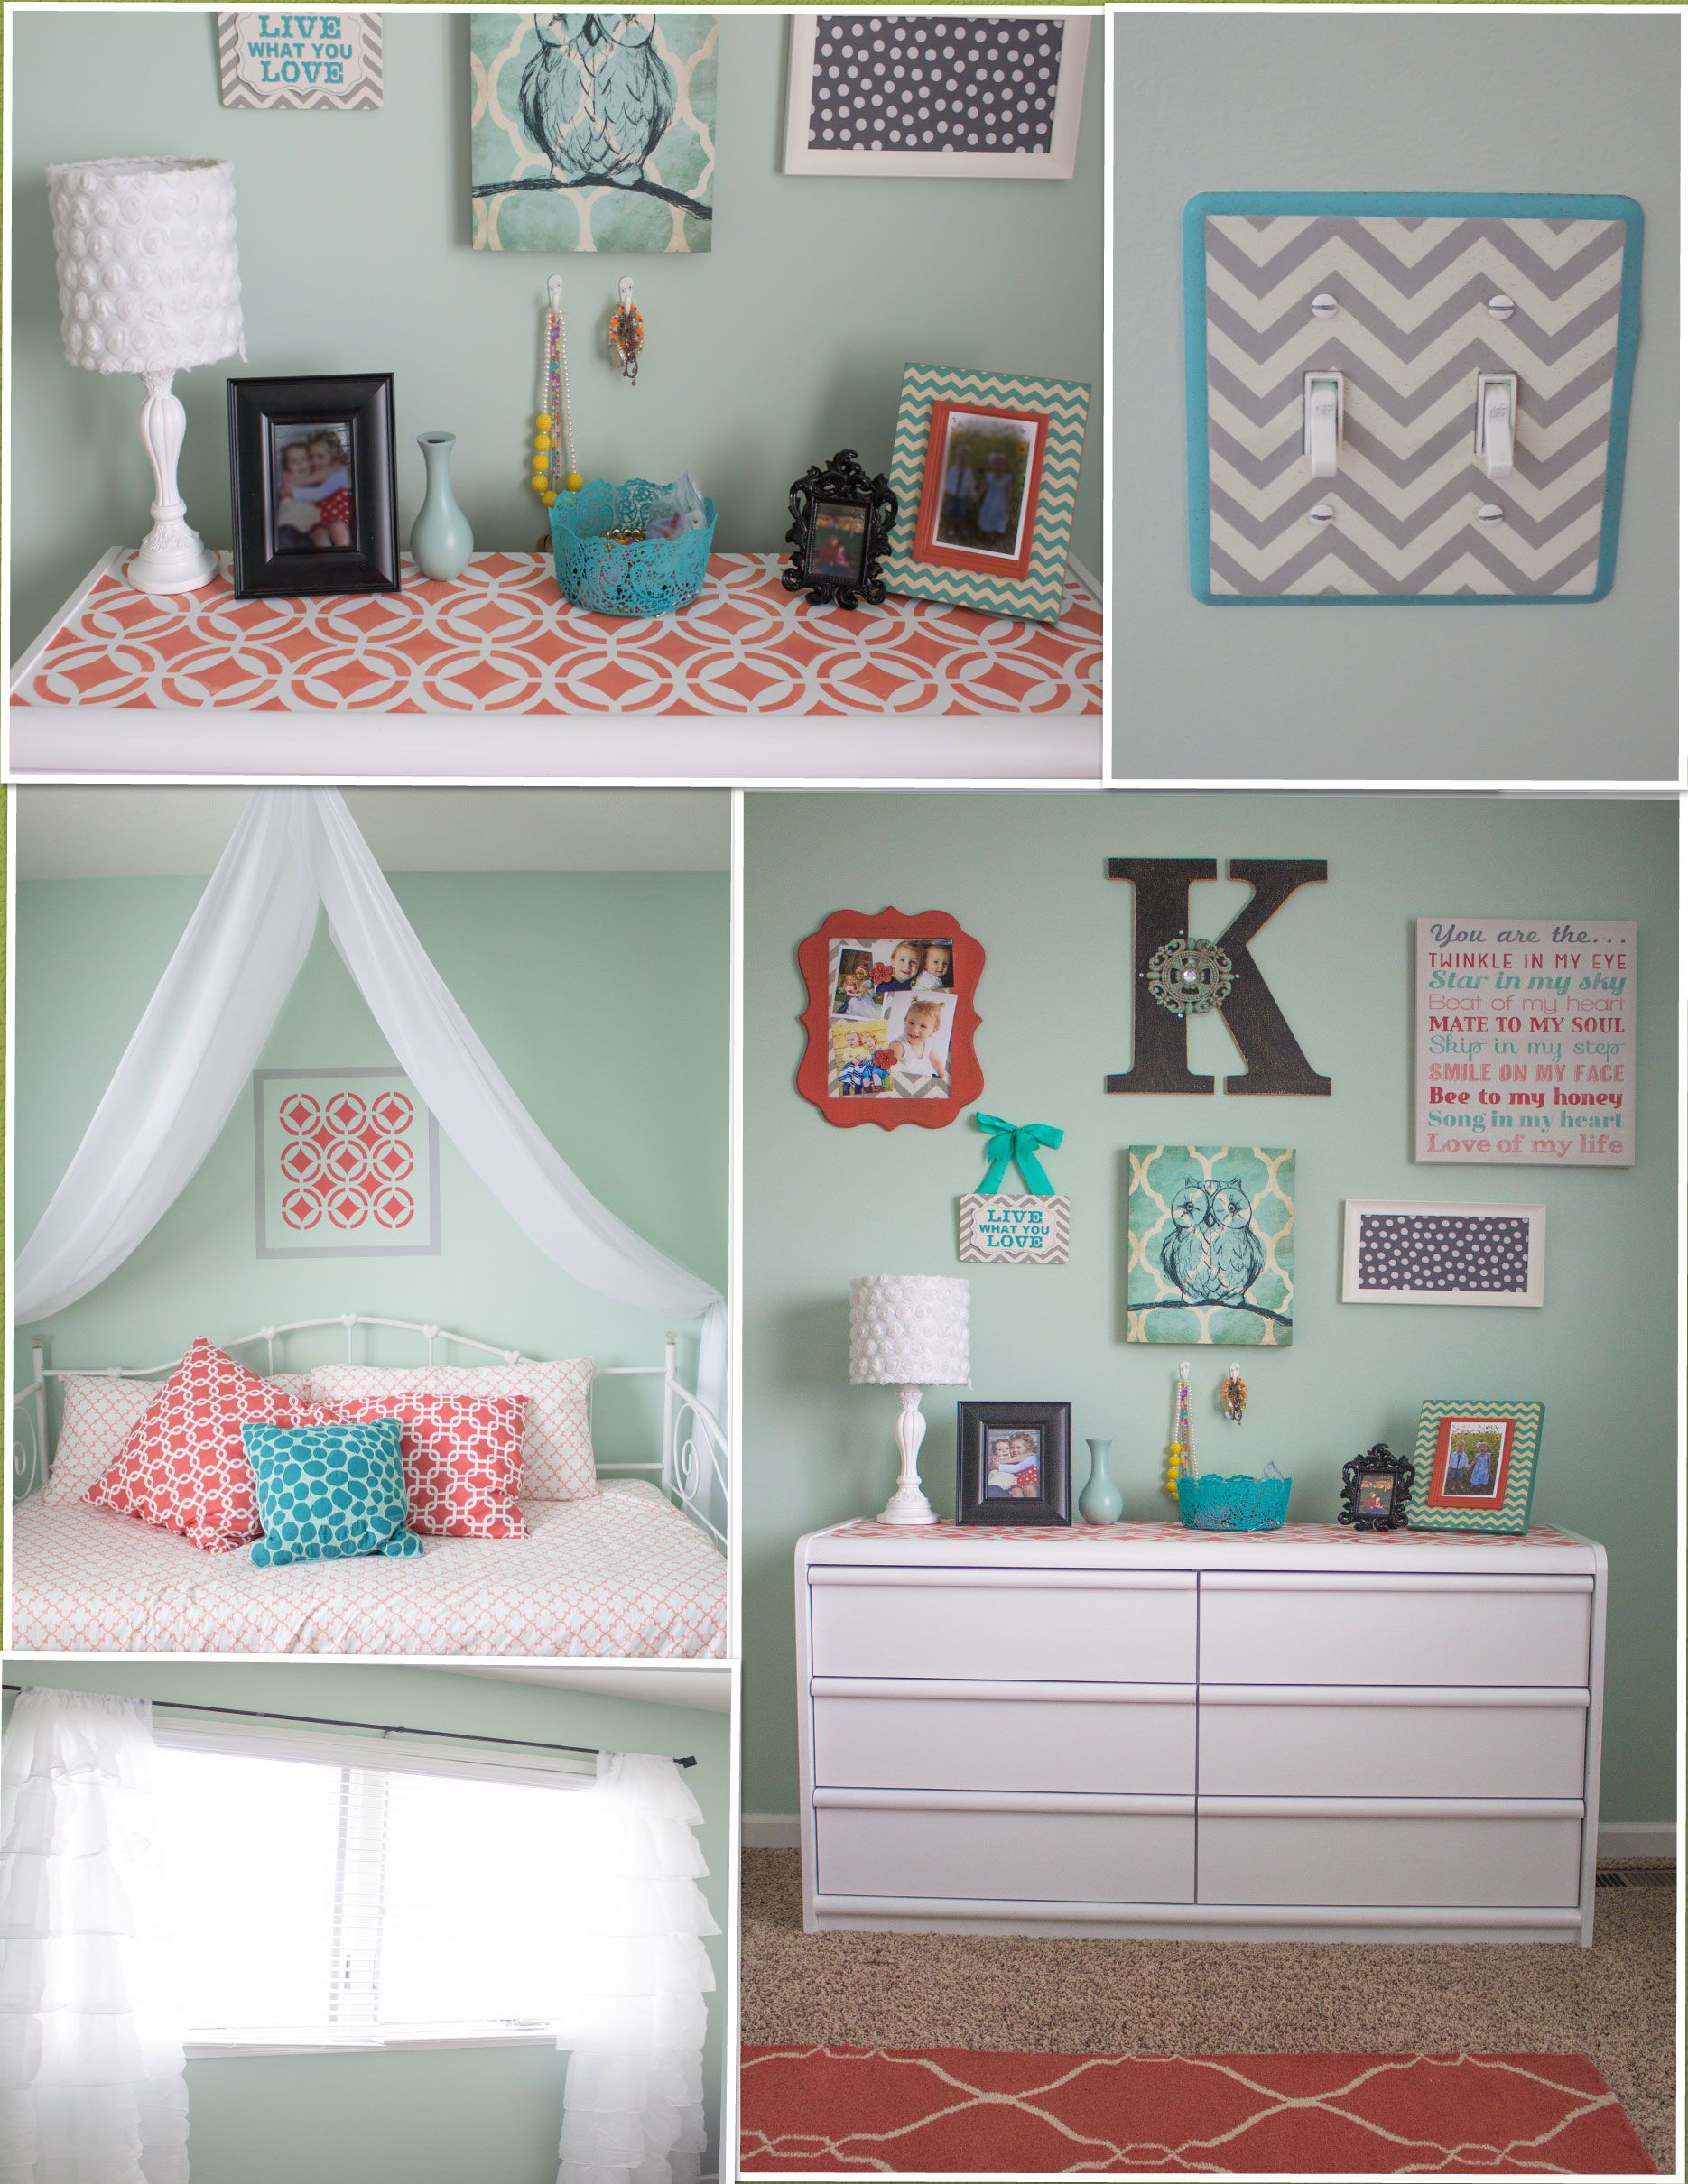 my new favorite room in the house! love my mint and coral creation